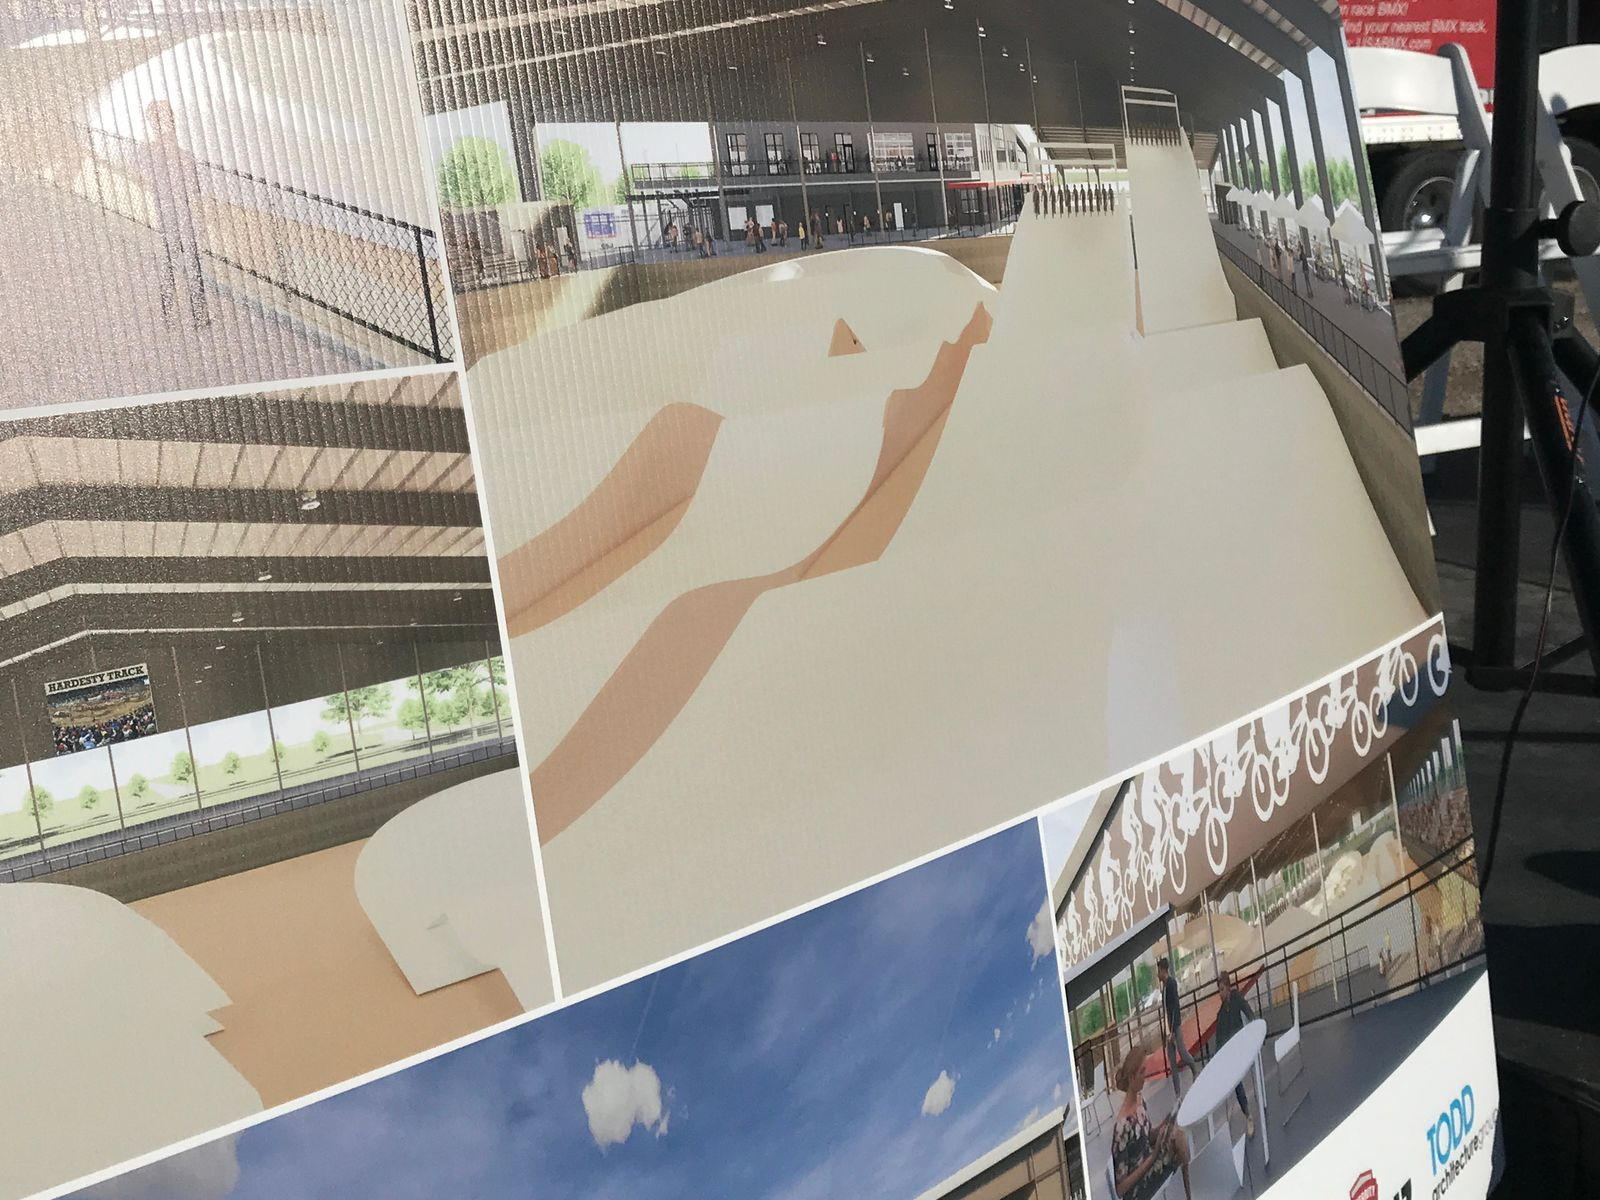 Designs are seen Friday, Nov. 15, 2019, during a groundbreaking ceremony for the new USA BMX headquarters, stadium and museum in Tulsa, Okla. (KTUL photo)